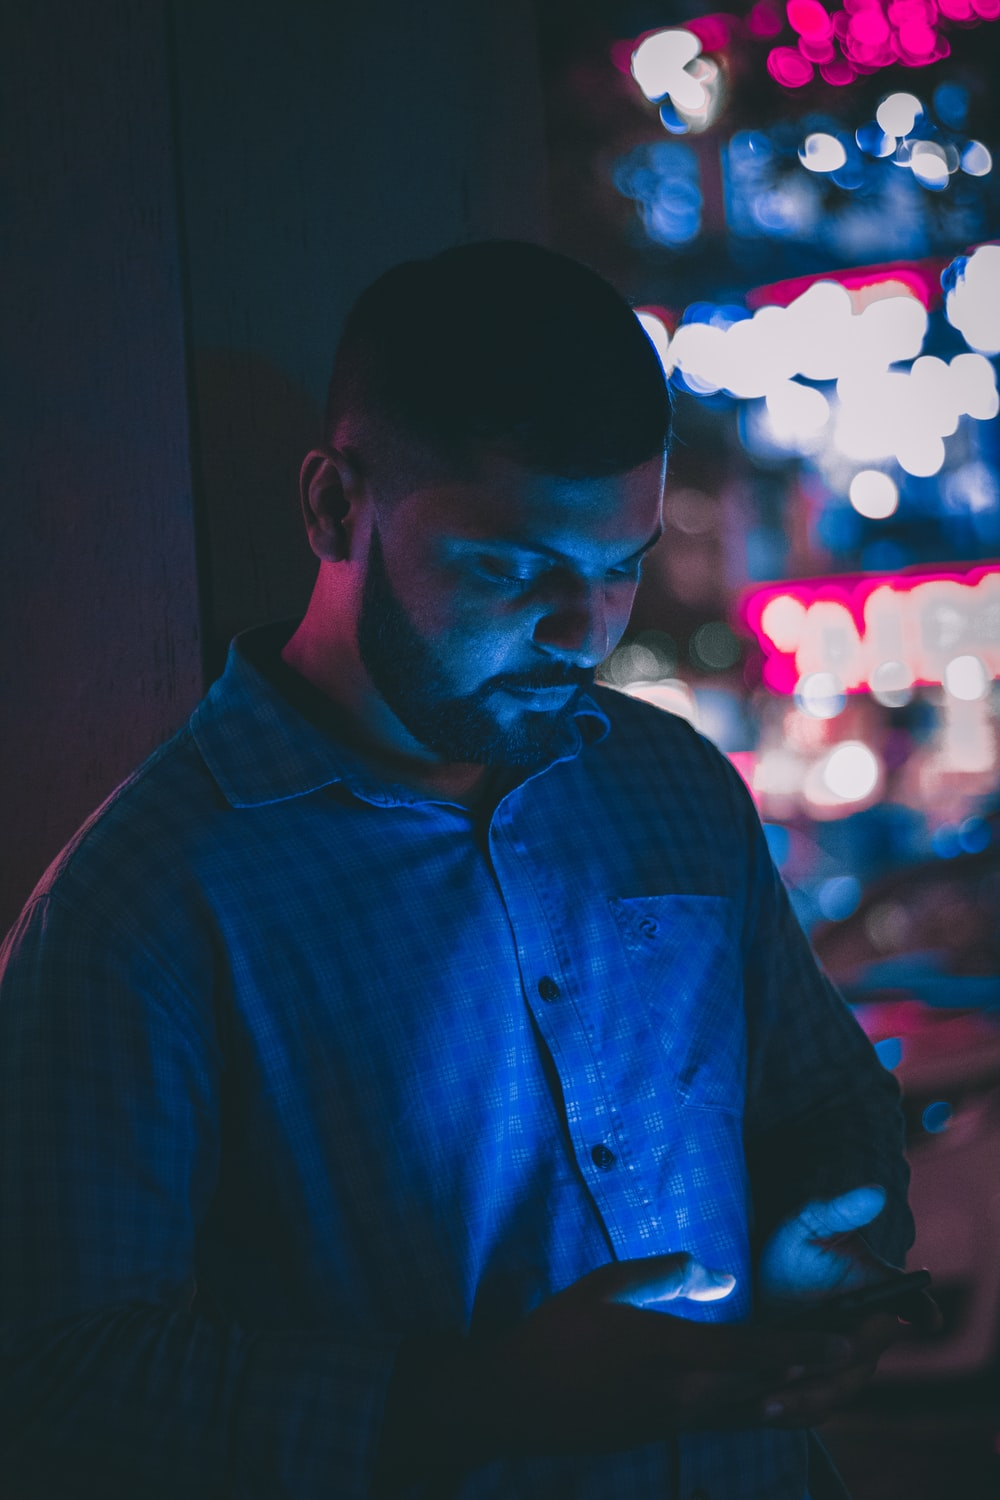 selective focus photography of man holding smartphone with bokeh photography background